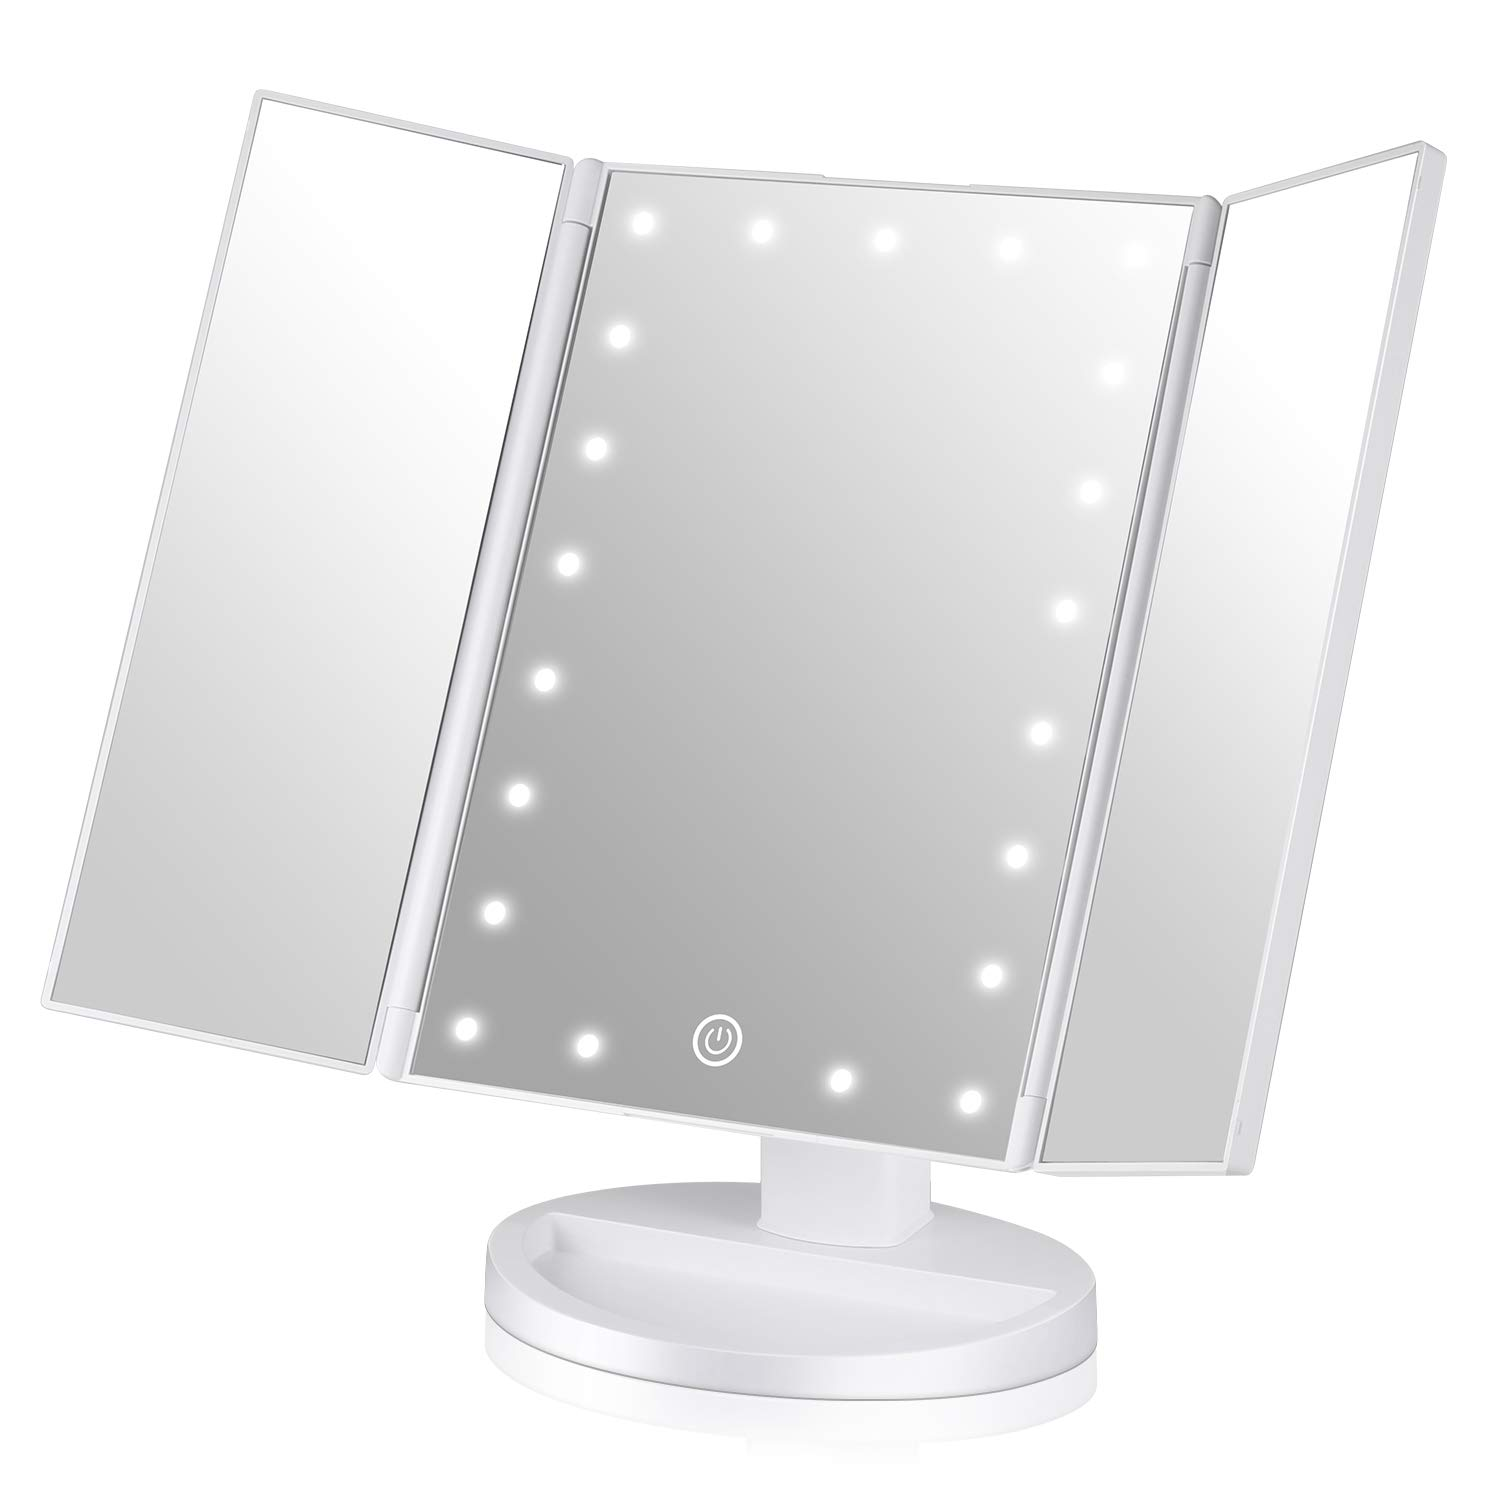 Easehold Tri Fold Illuminated Vanity Mirror Led Lights Touch Screen